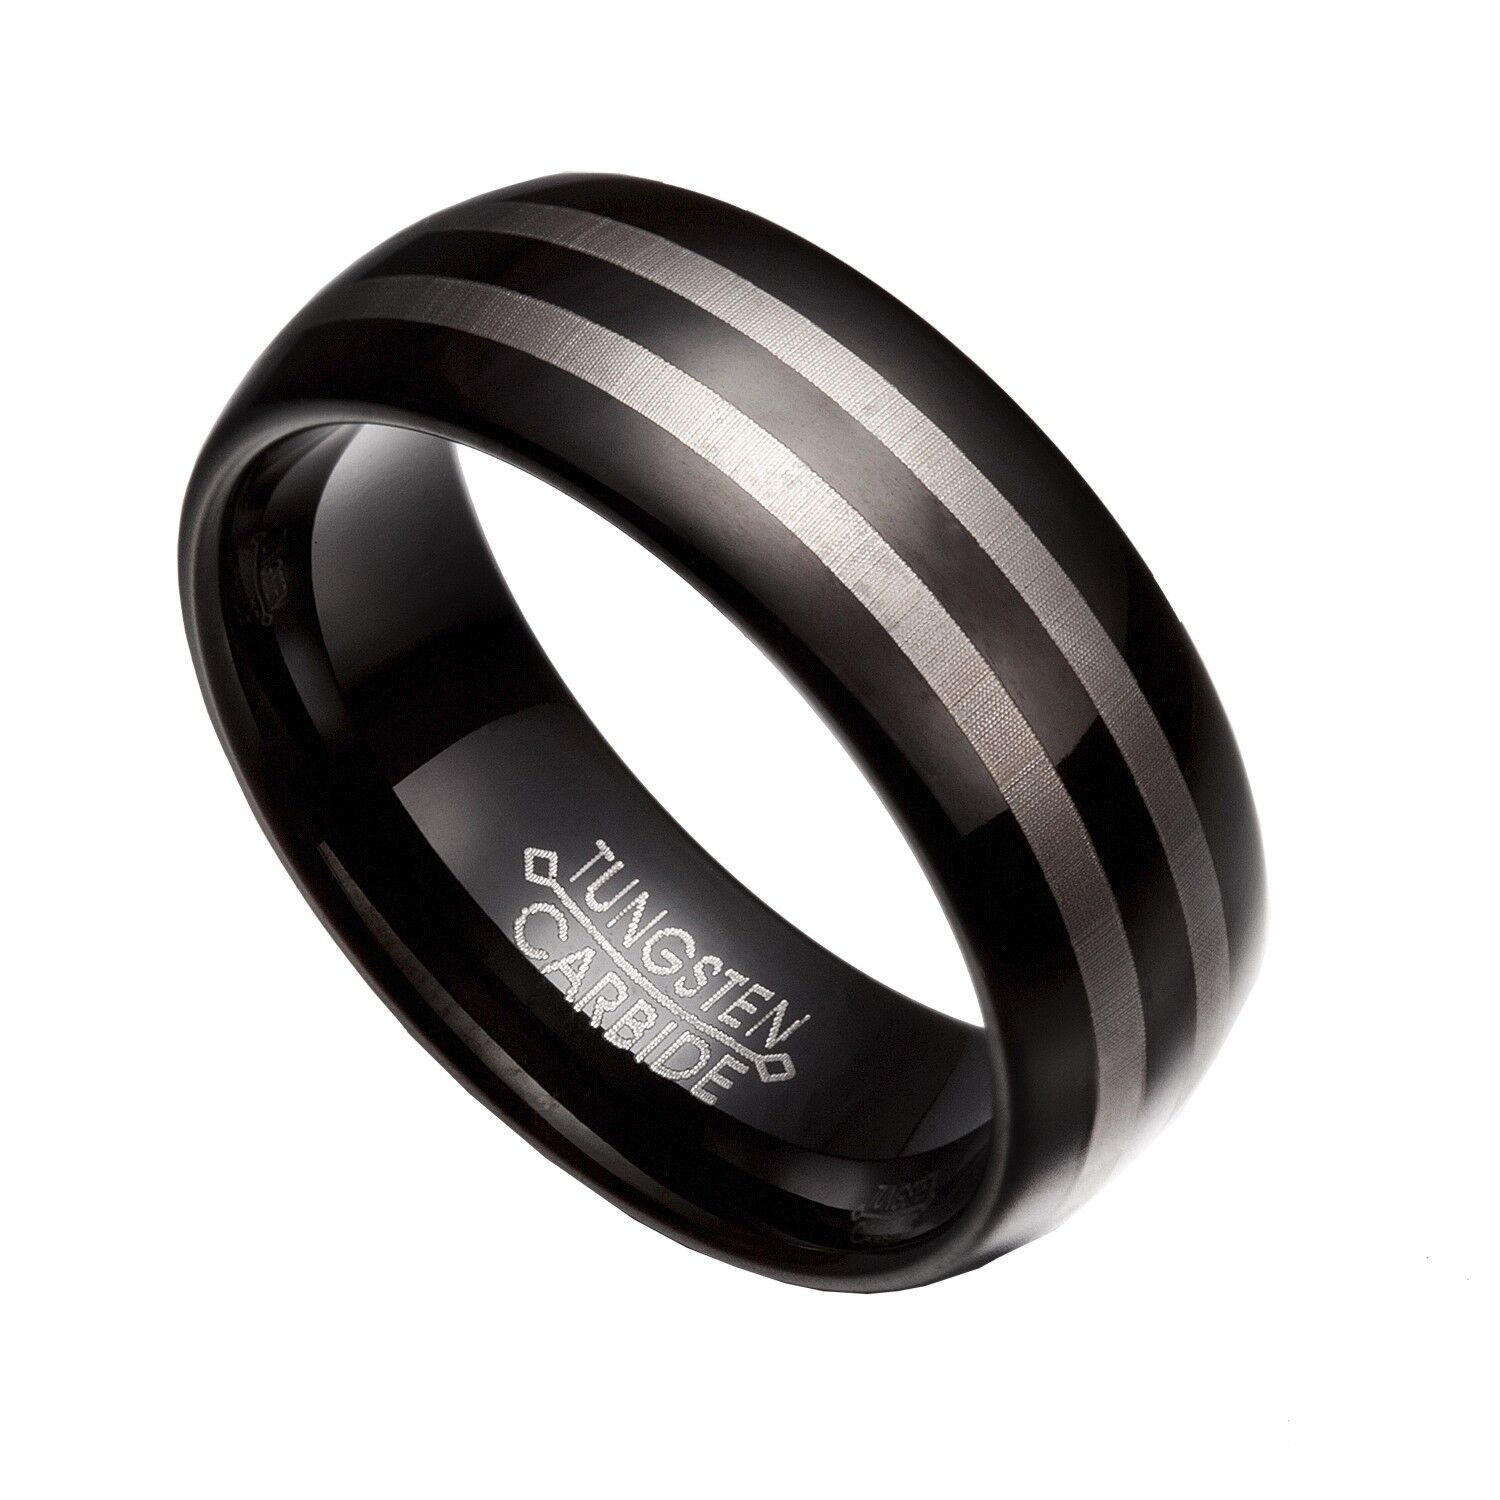 black gray tungsten carbide 8mm comfort fit wedding band rings size 8 14 tg47 ebay. Black Bedroom Furniture Sets. Home Design Ideas